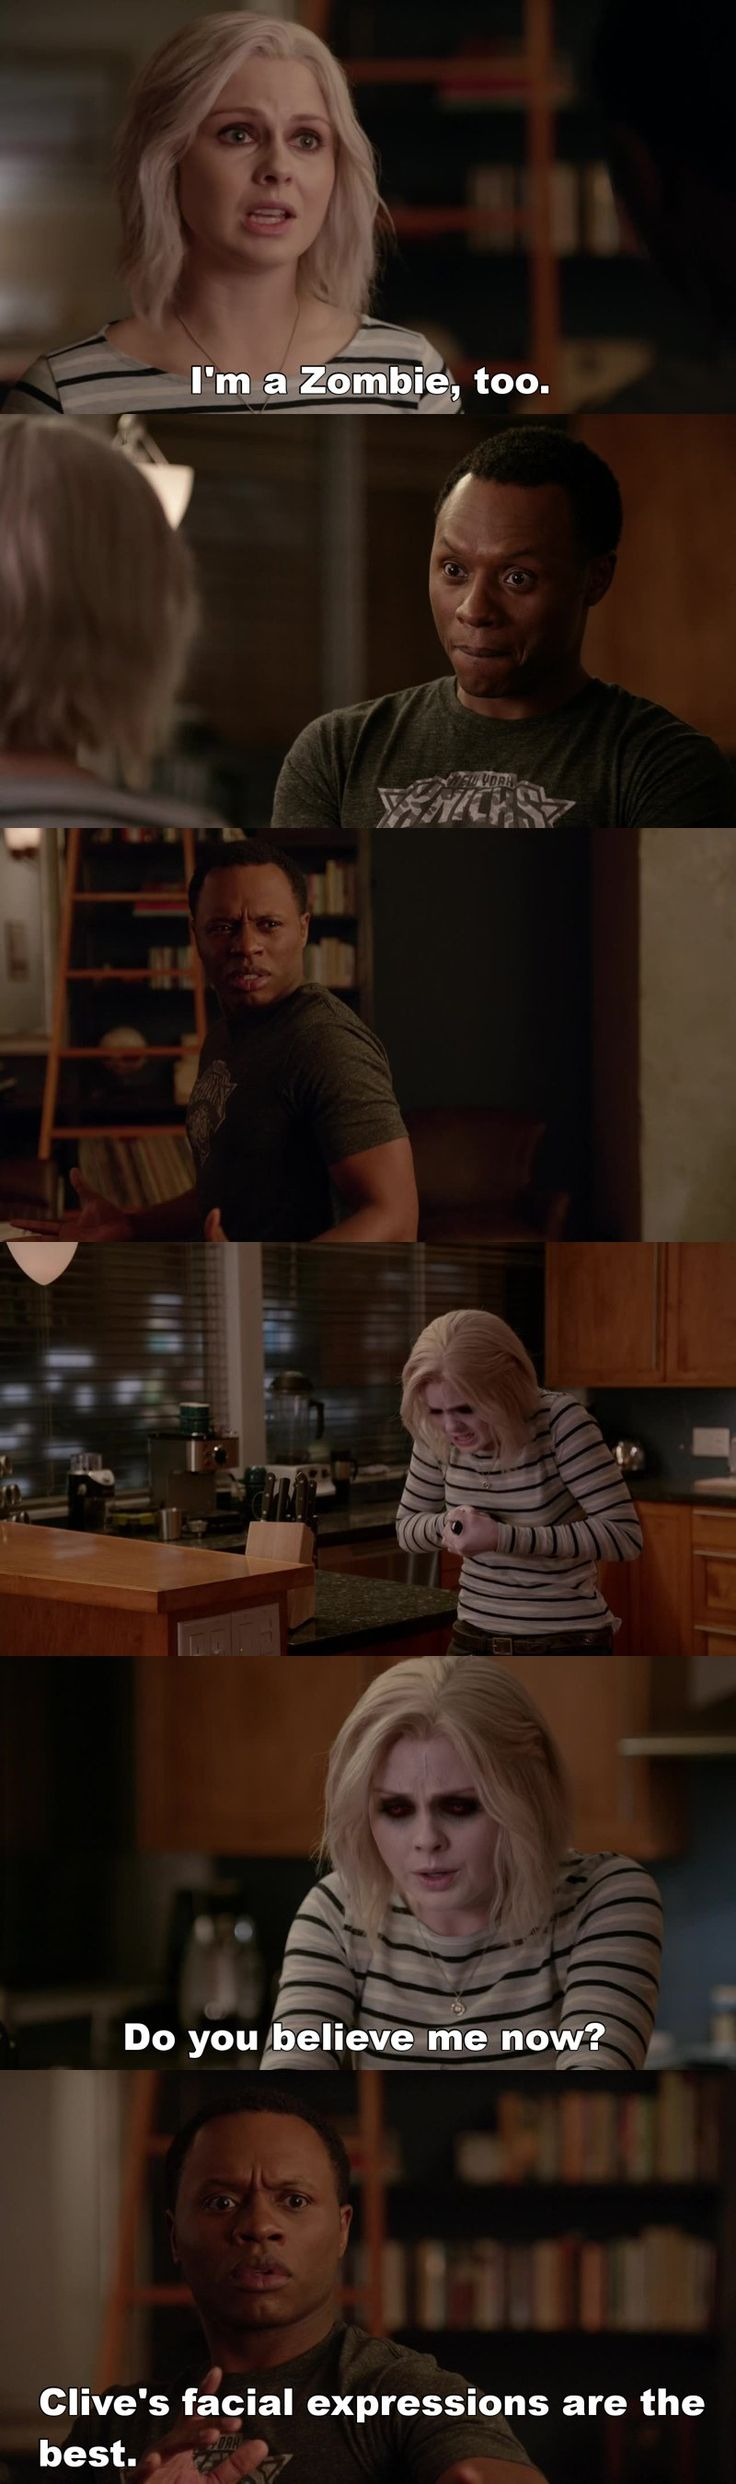 TVShow Time - iZombie S02E18 - Deadbeat